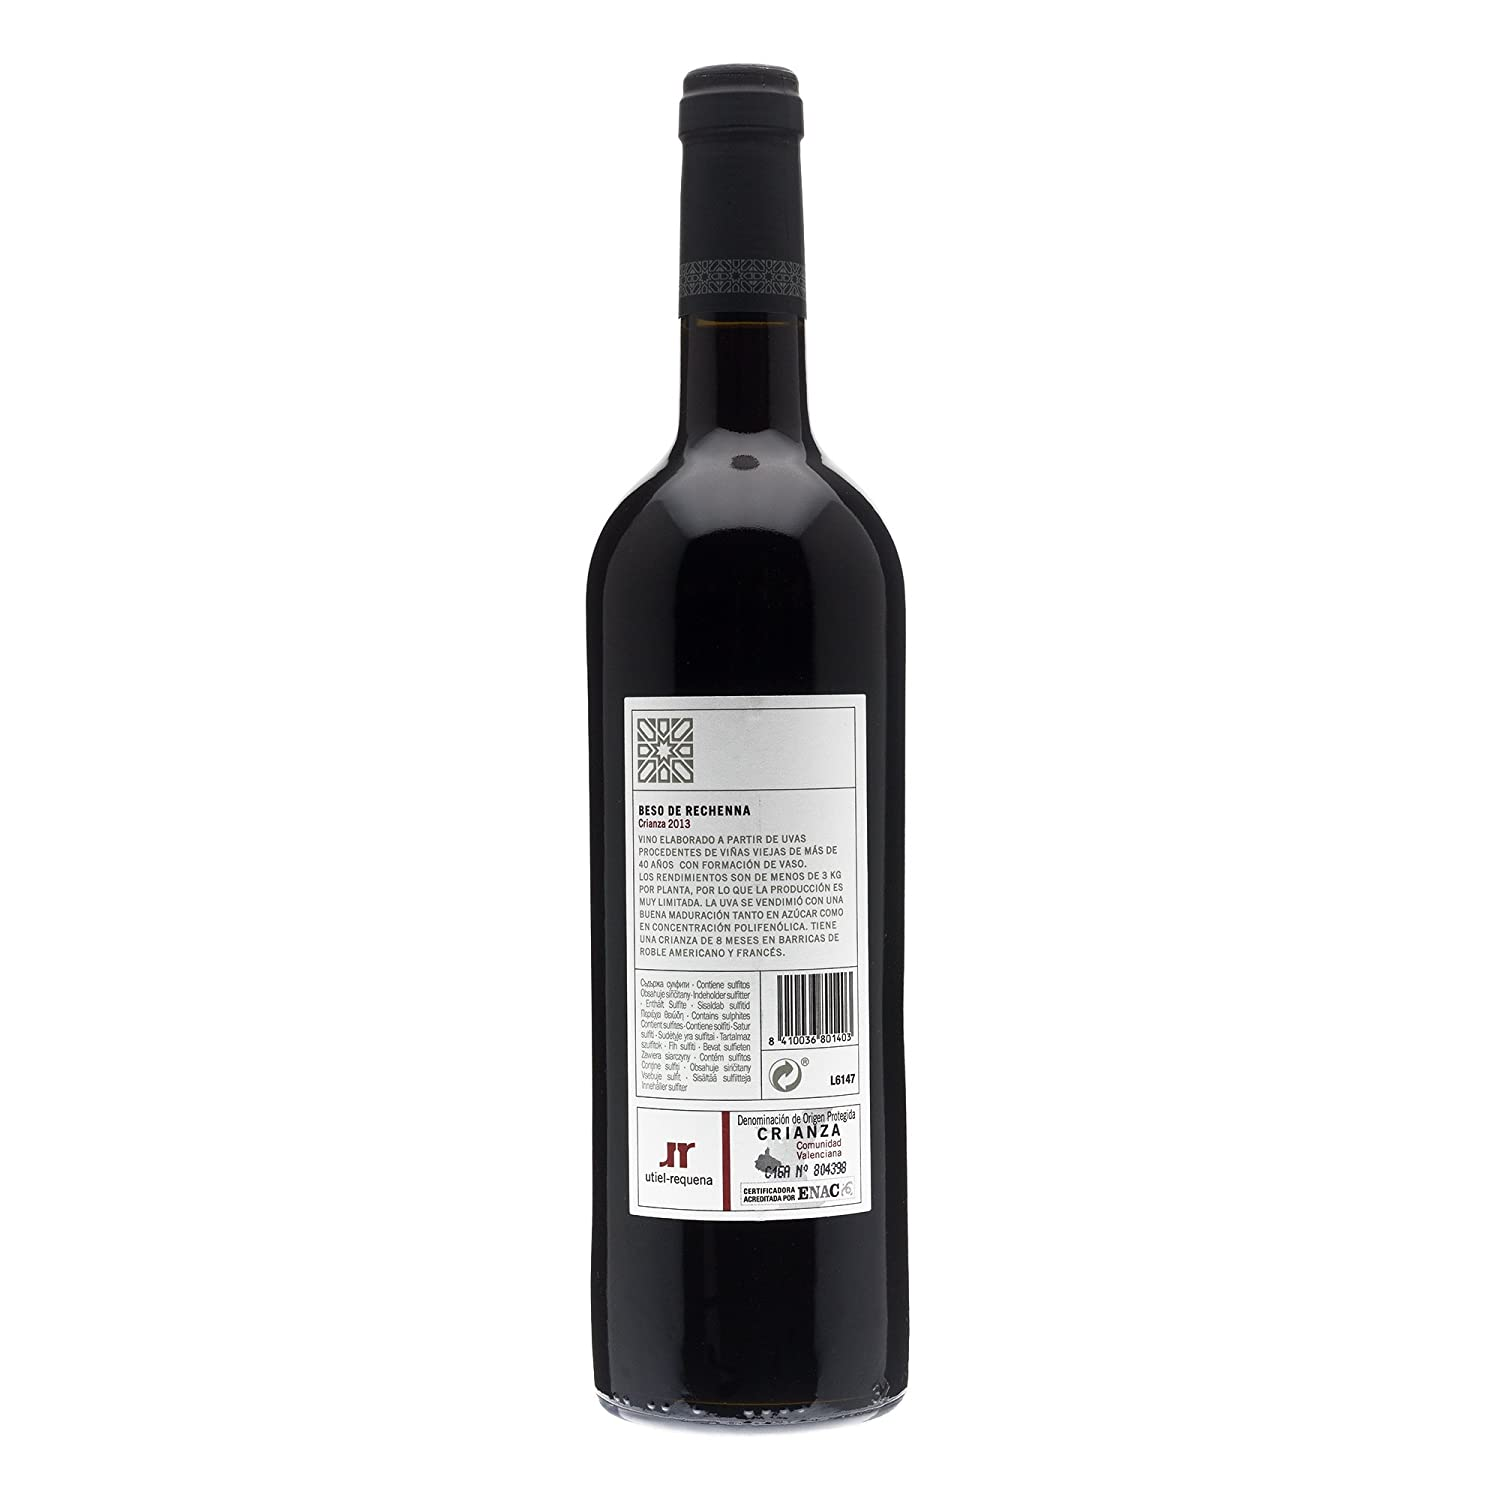 BESO DE RECHENNA vino tinto Do Utiel Requena botella 75 cl: Amazon.es: Alimentación y bebidas